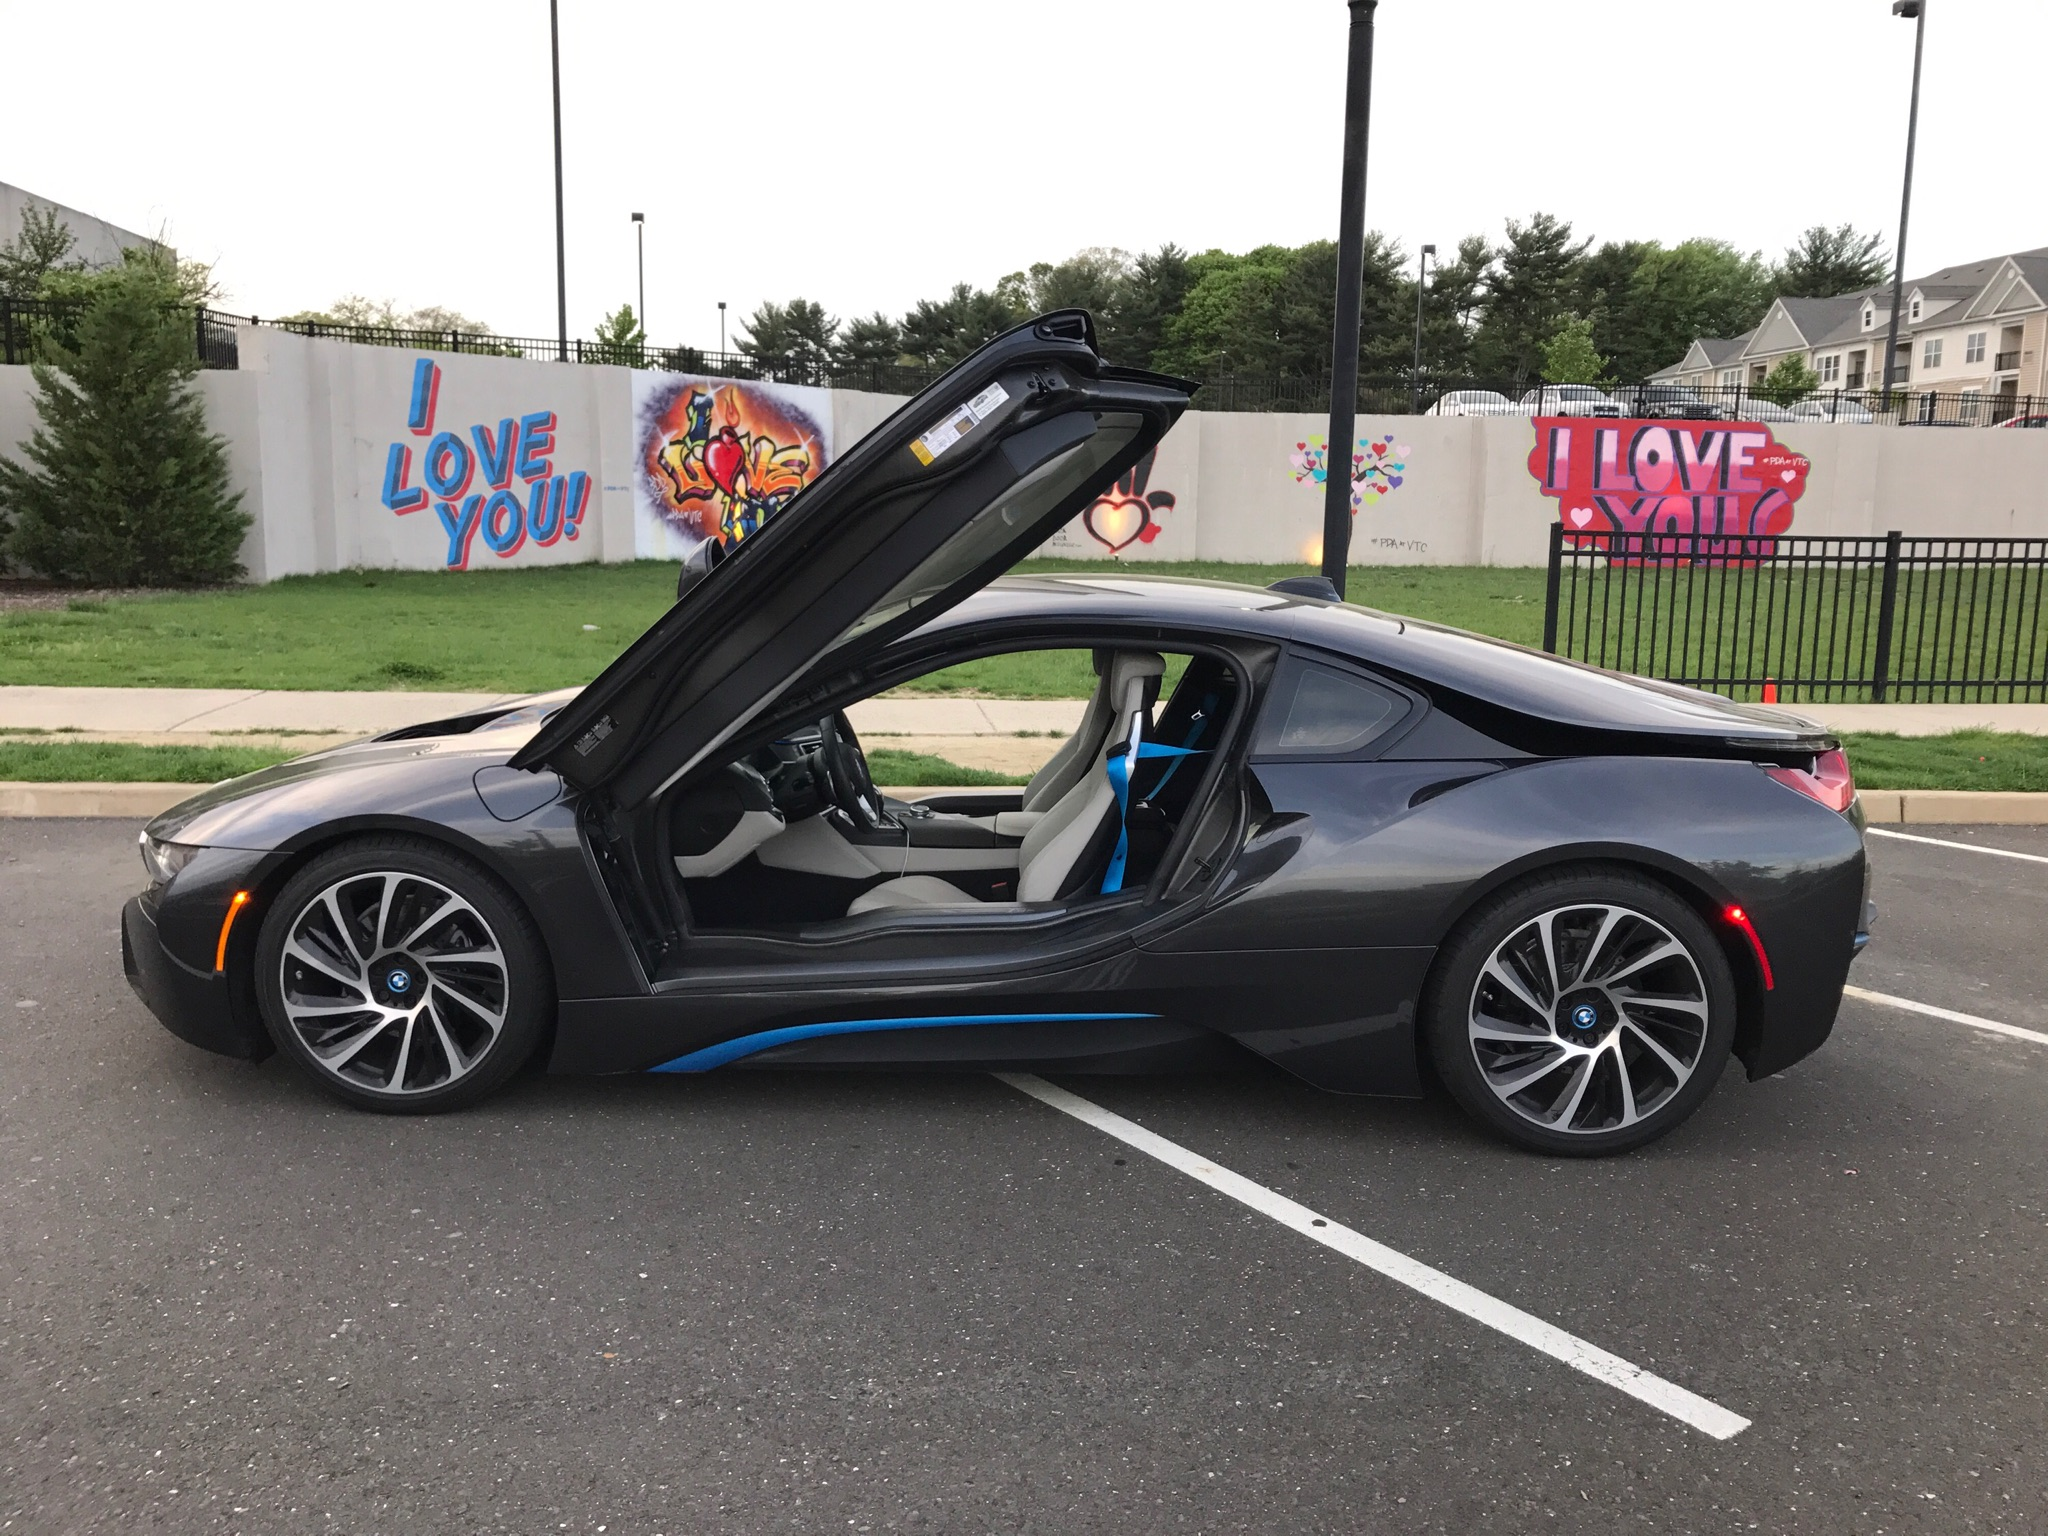 The Bmw I8 Hybrid Is A Phenomenal Vehicle Few Vehicles On Road Today Can Compete With Its Exotic Design And Even Less Boast Same Amount Of